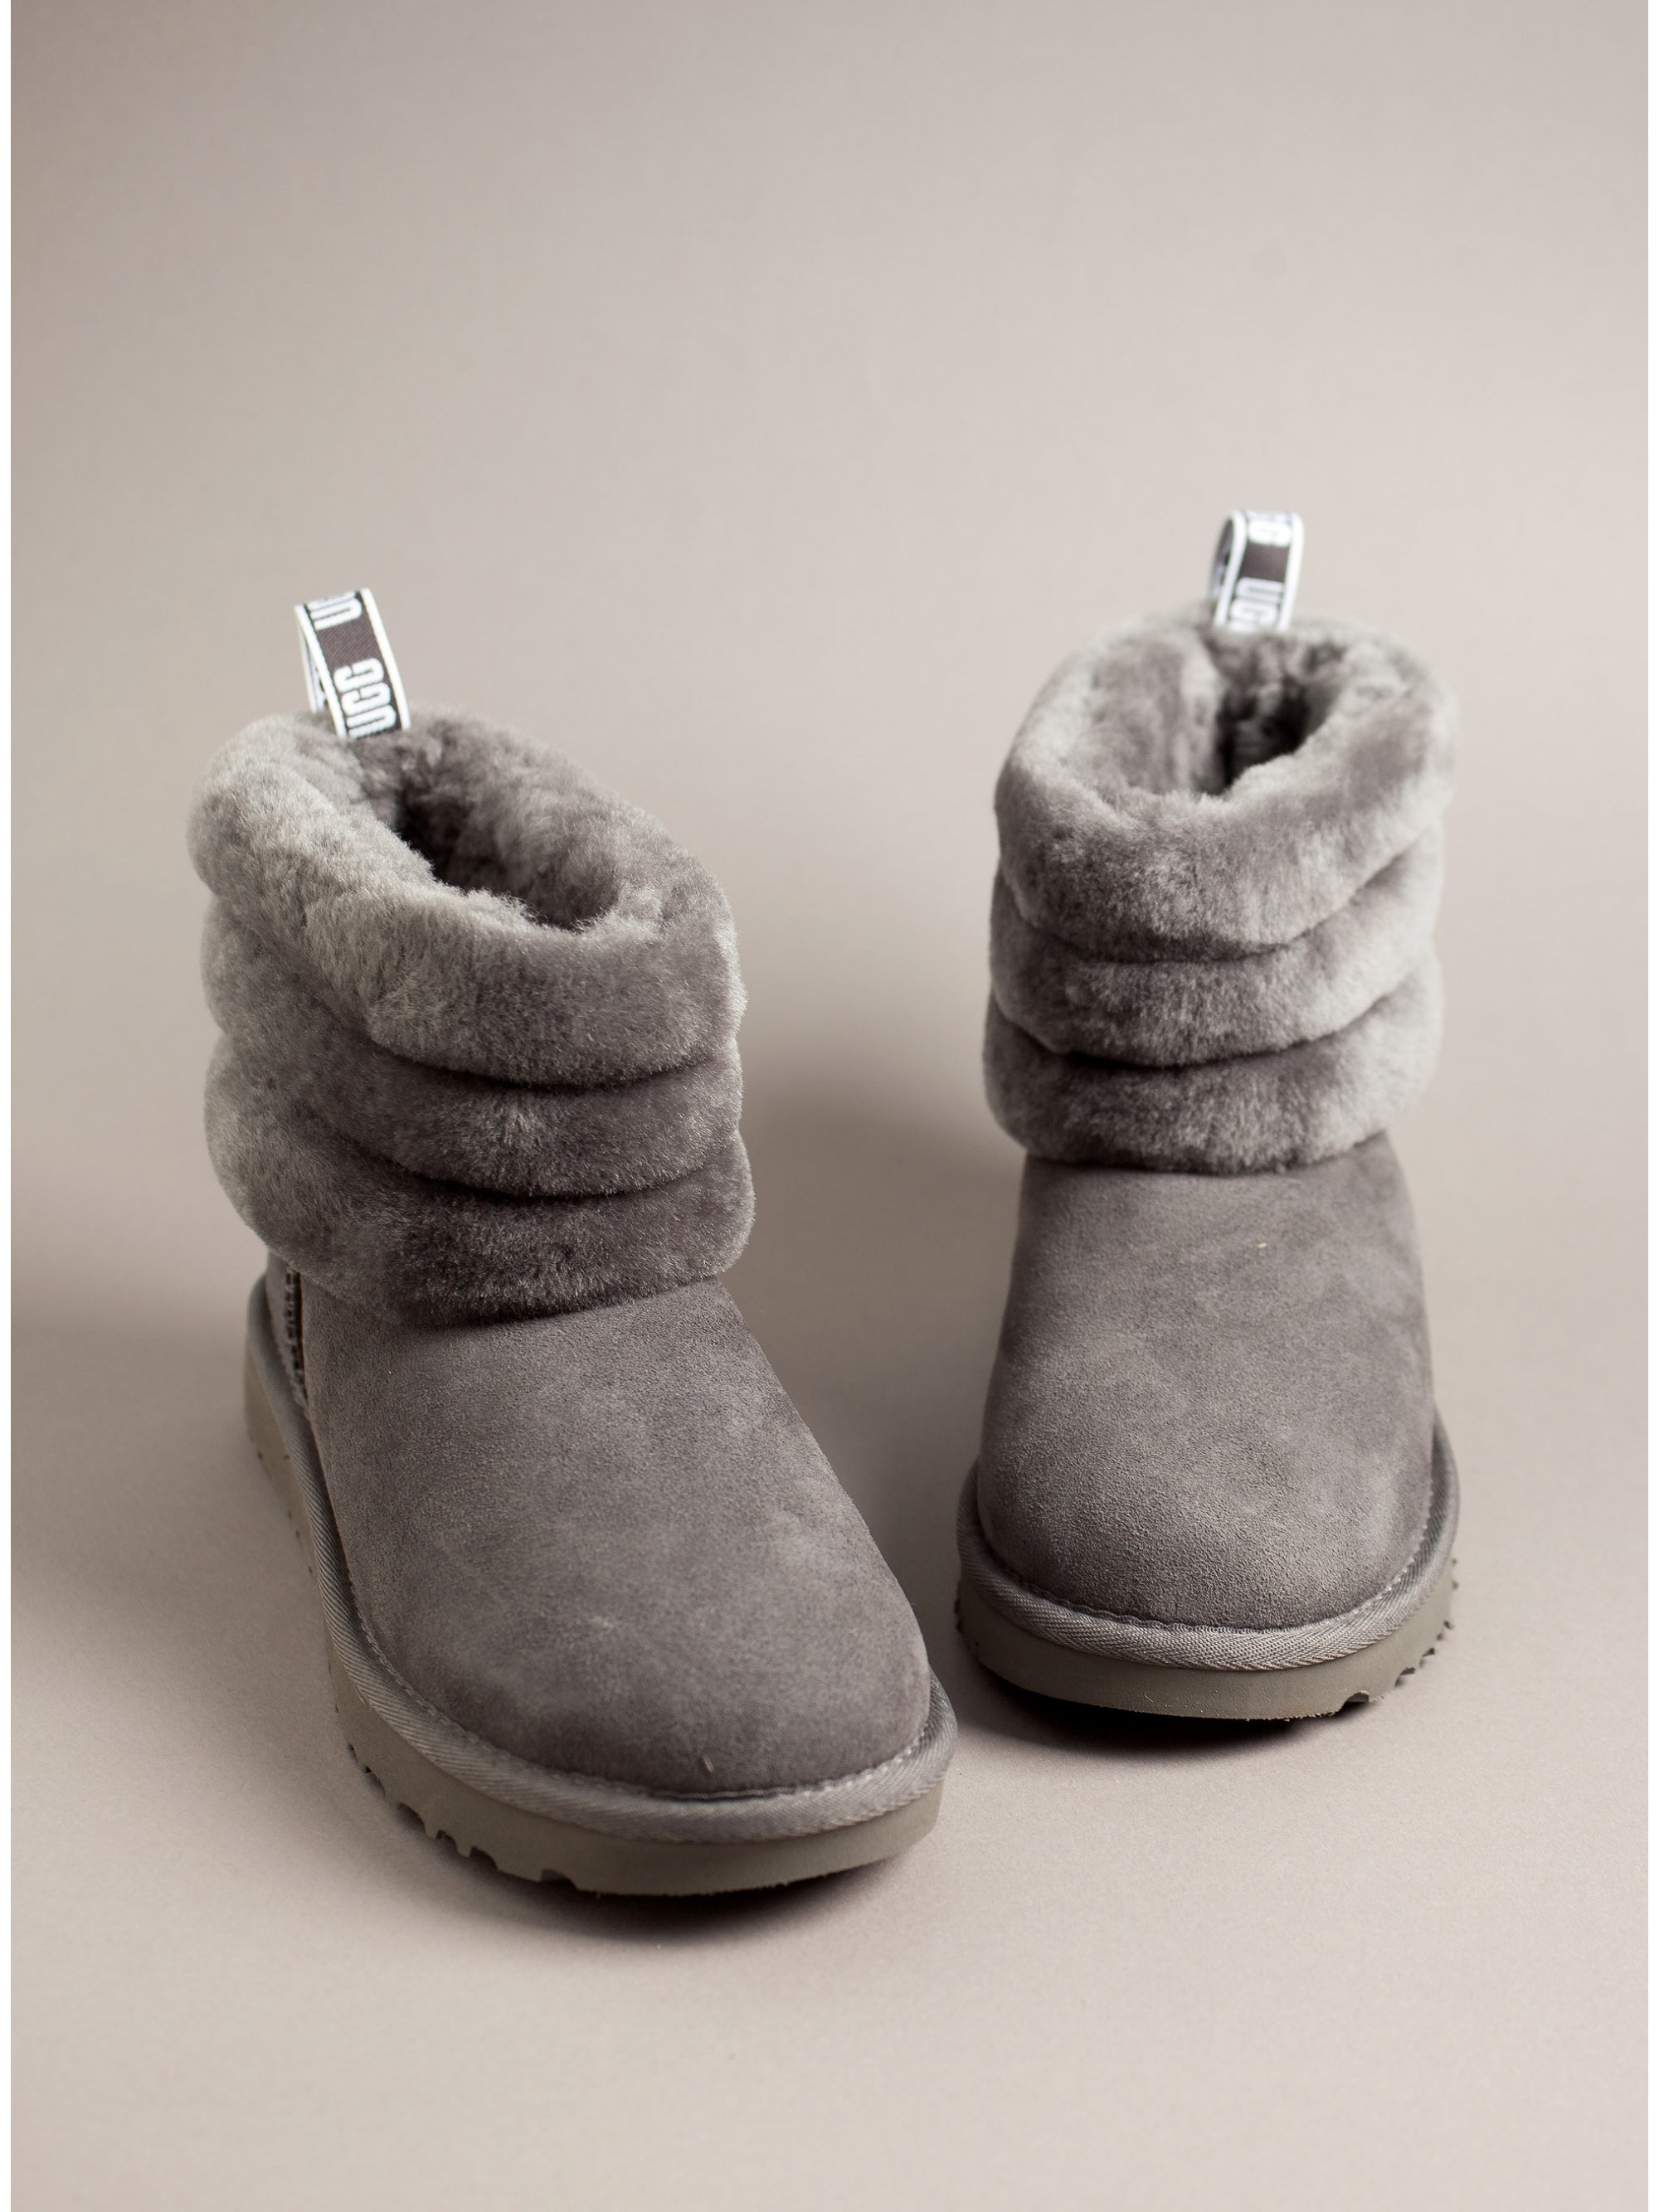 776faae1936 Ugg Australia Ankle Boots Fluff Mini Quilted-Grey - Women